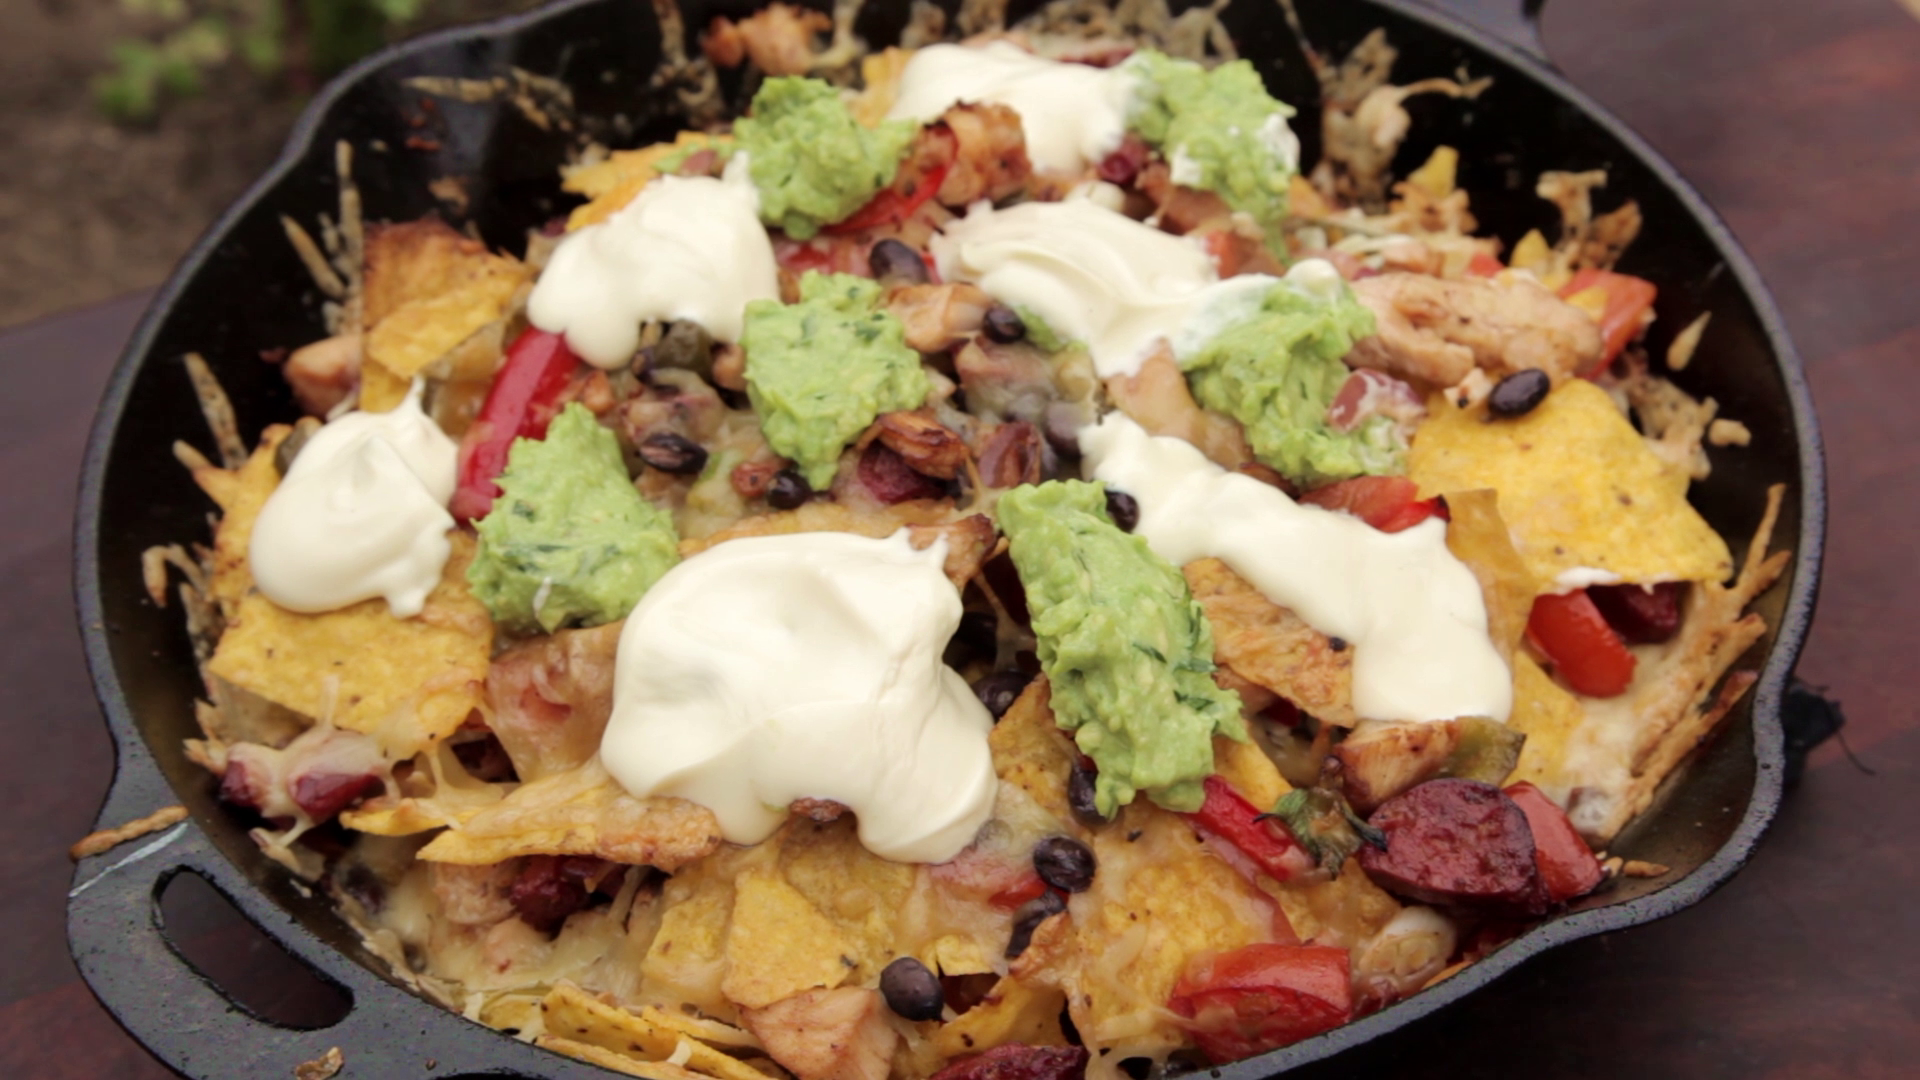 Picture of All That's Left to Do Is Top It With Some Guacamole and Some Sour Cream.